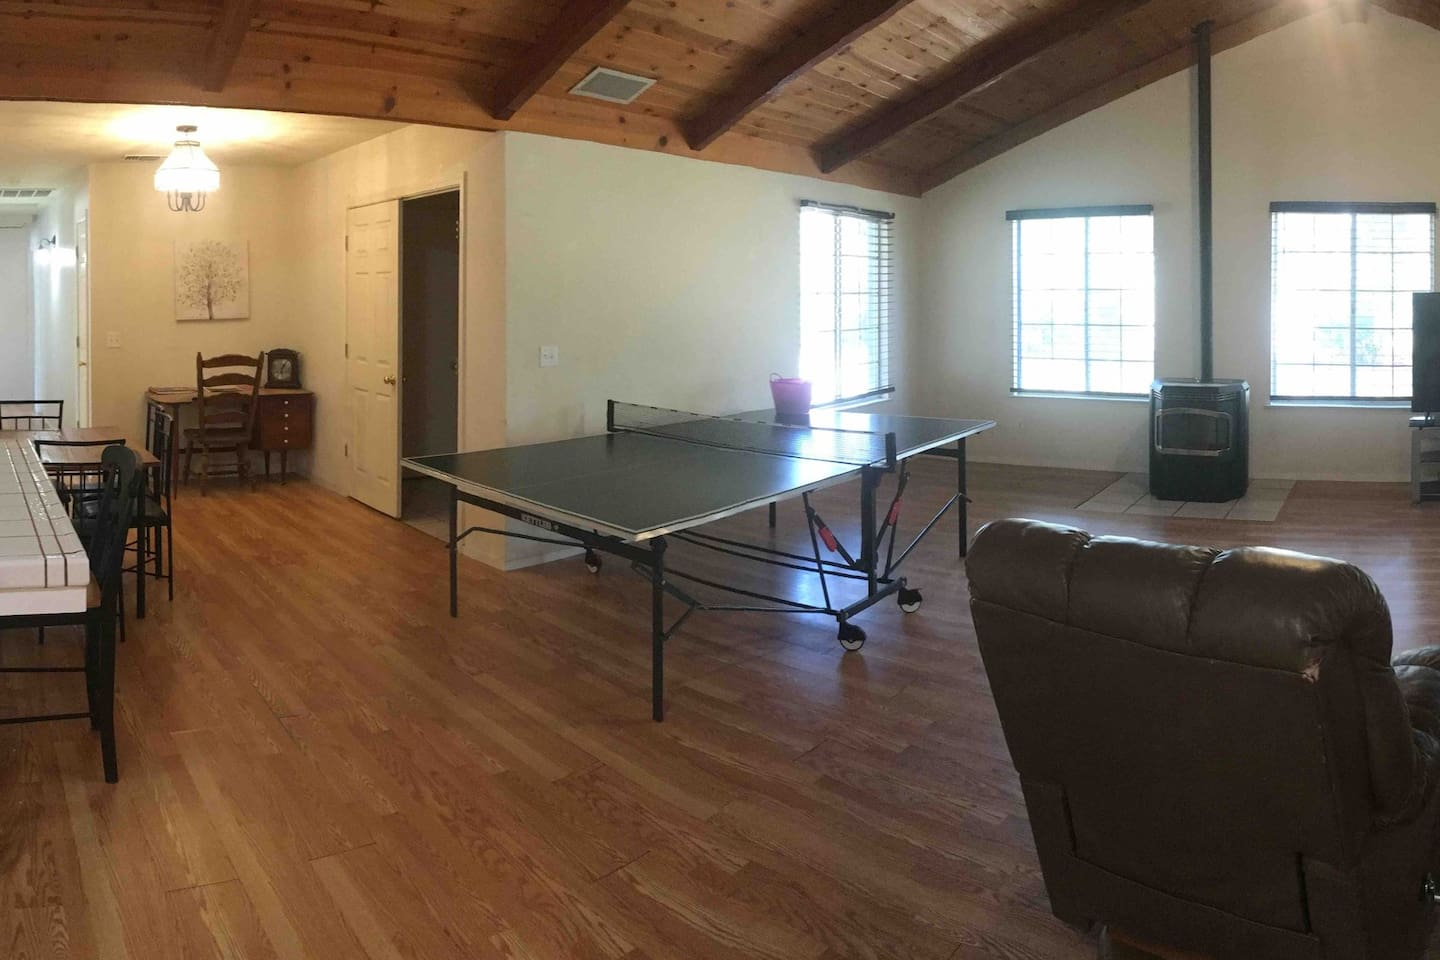 Come enjoy a fun game of ping pong with friends and family in our spacious living room, while watching NFL Sunday ticket on direct tv.